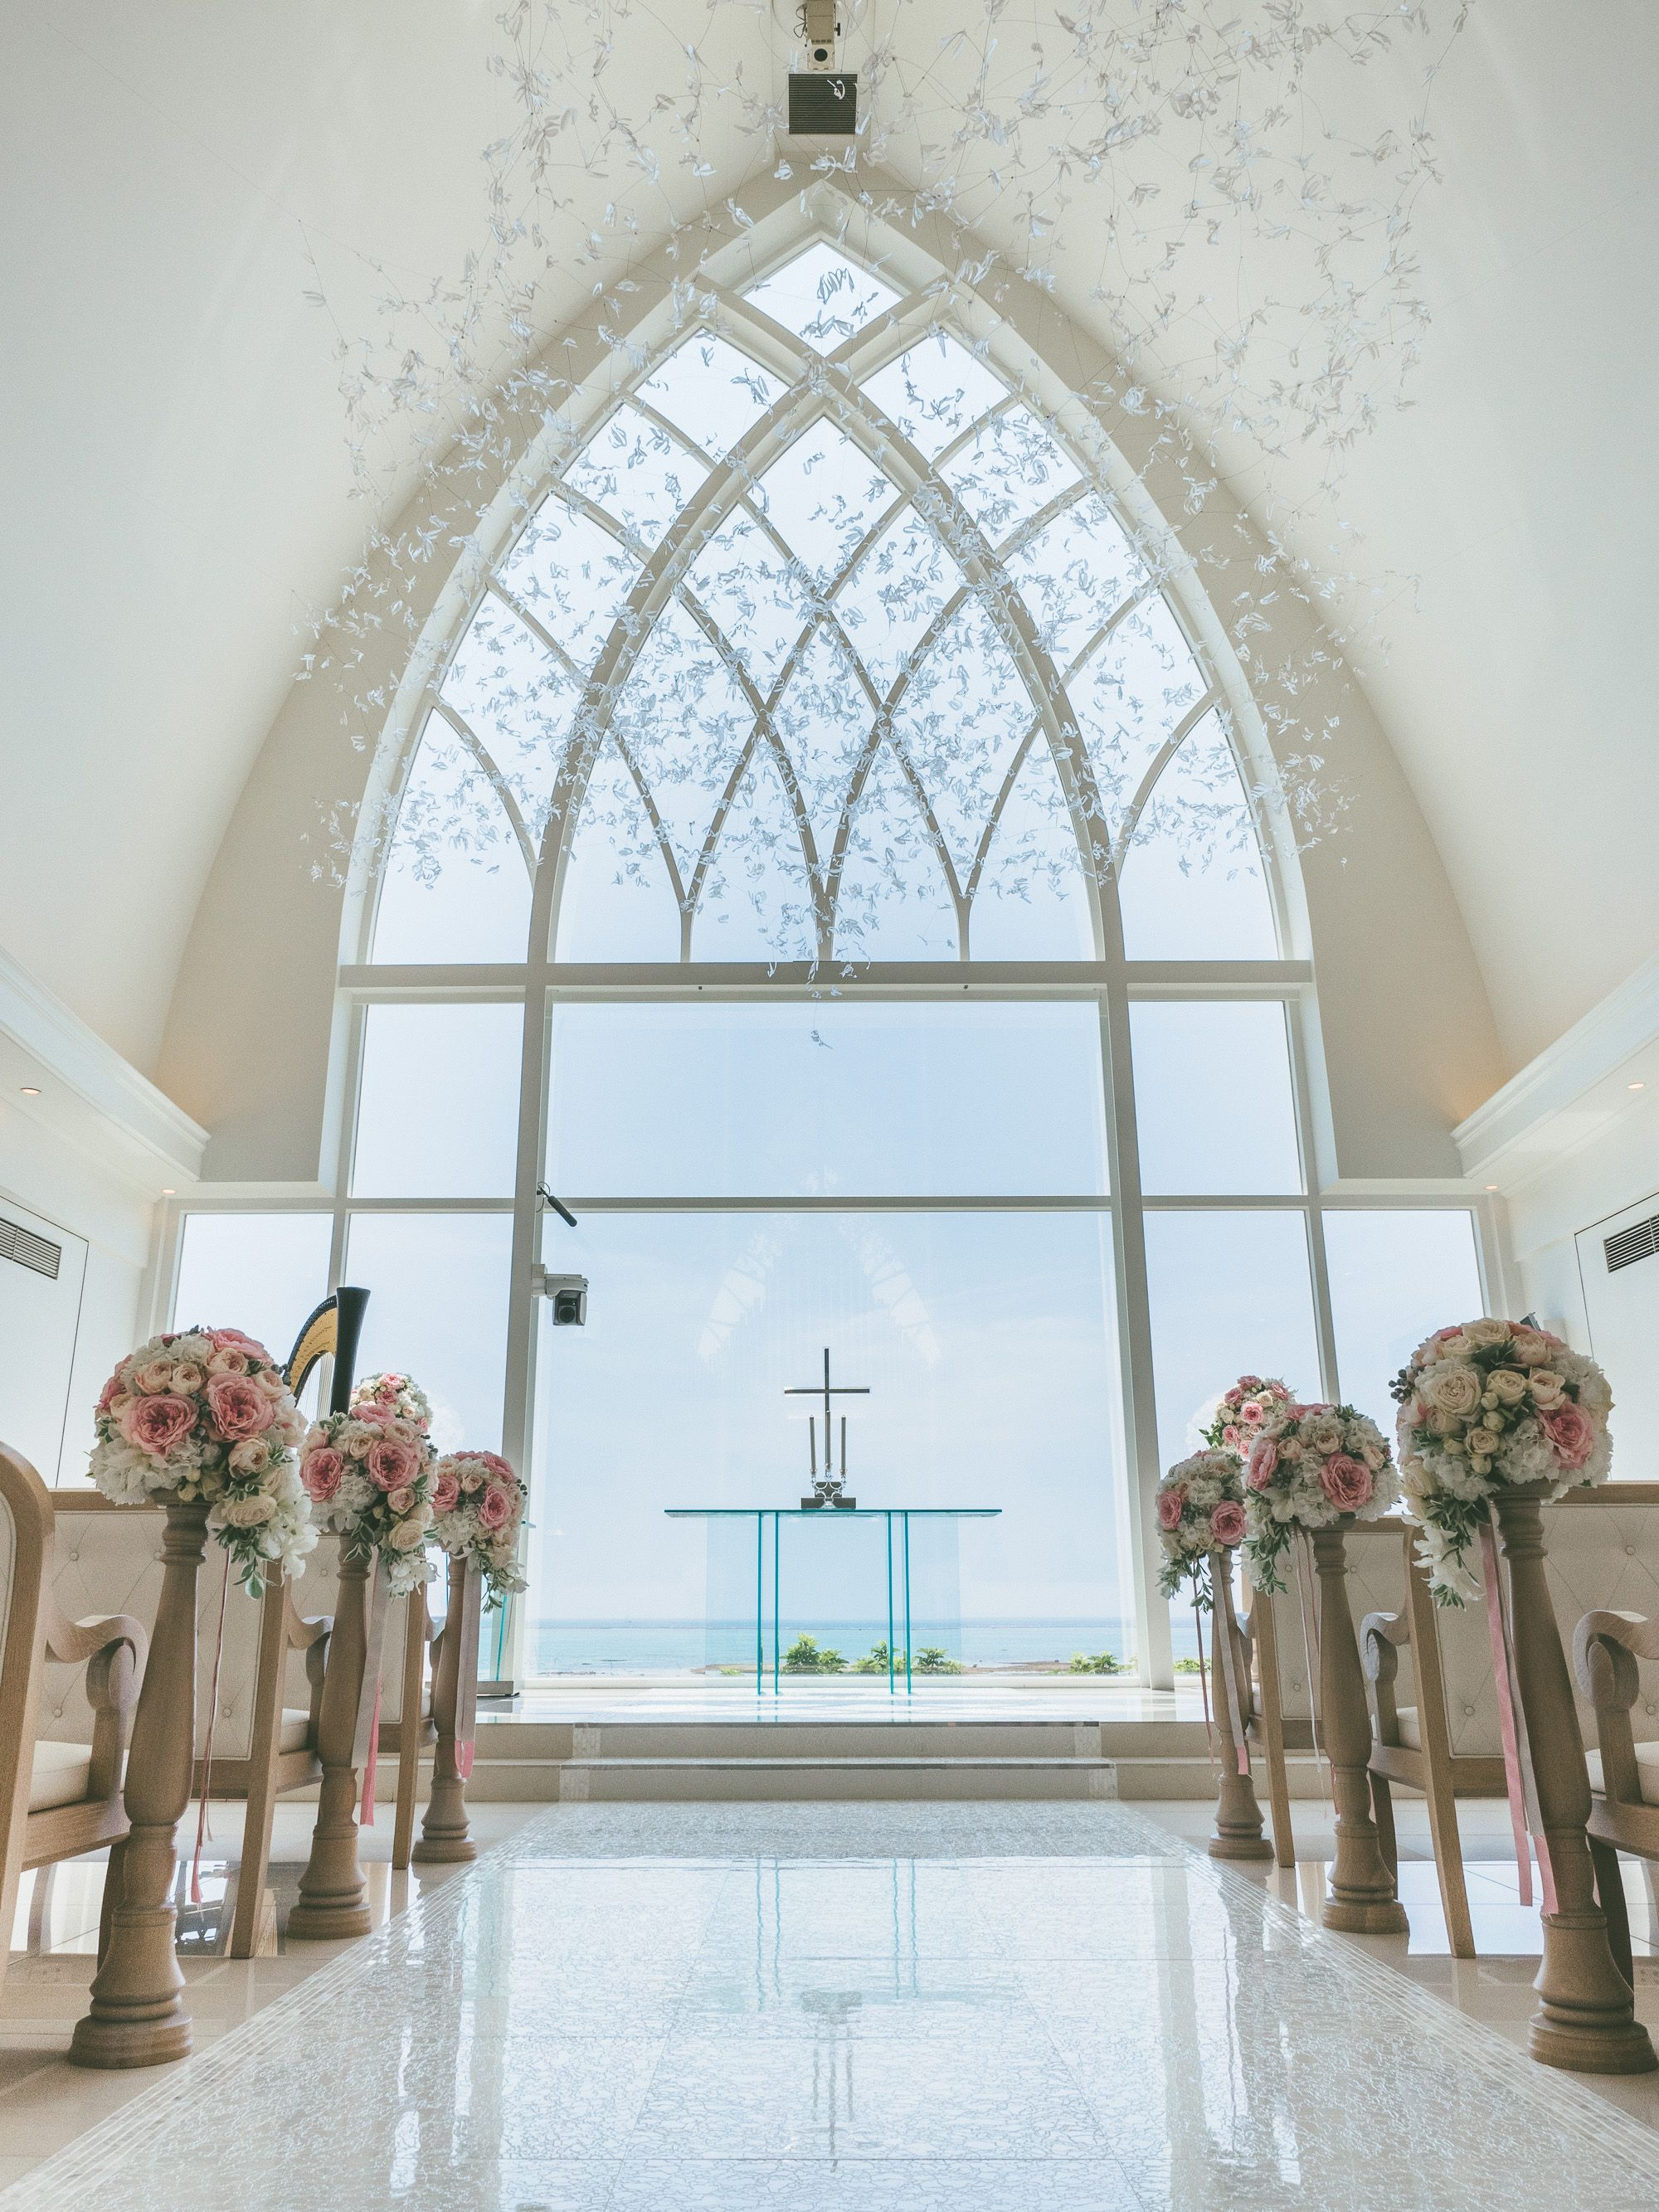 3 Wedding Chapels In Okinawa For A Fairytale Wedding Chapel Wedding Beautiful Wedding Location Okinawa